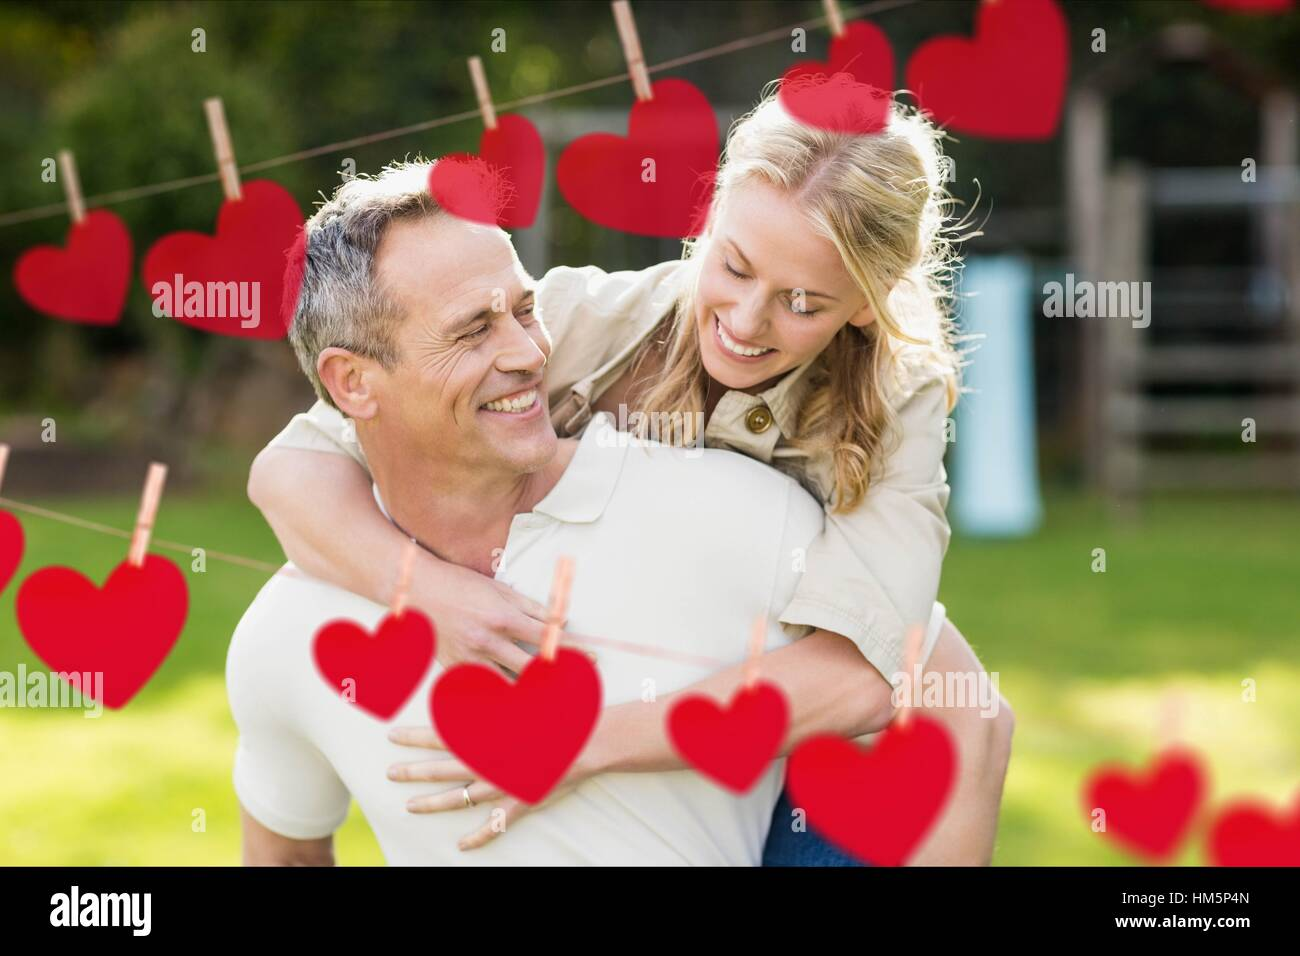 Composite image of red hanging heart and man giving a piggyback to woman - Stock Image